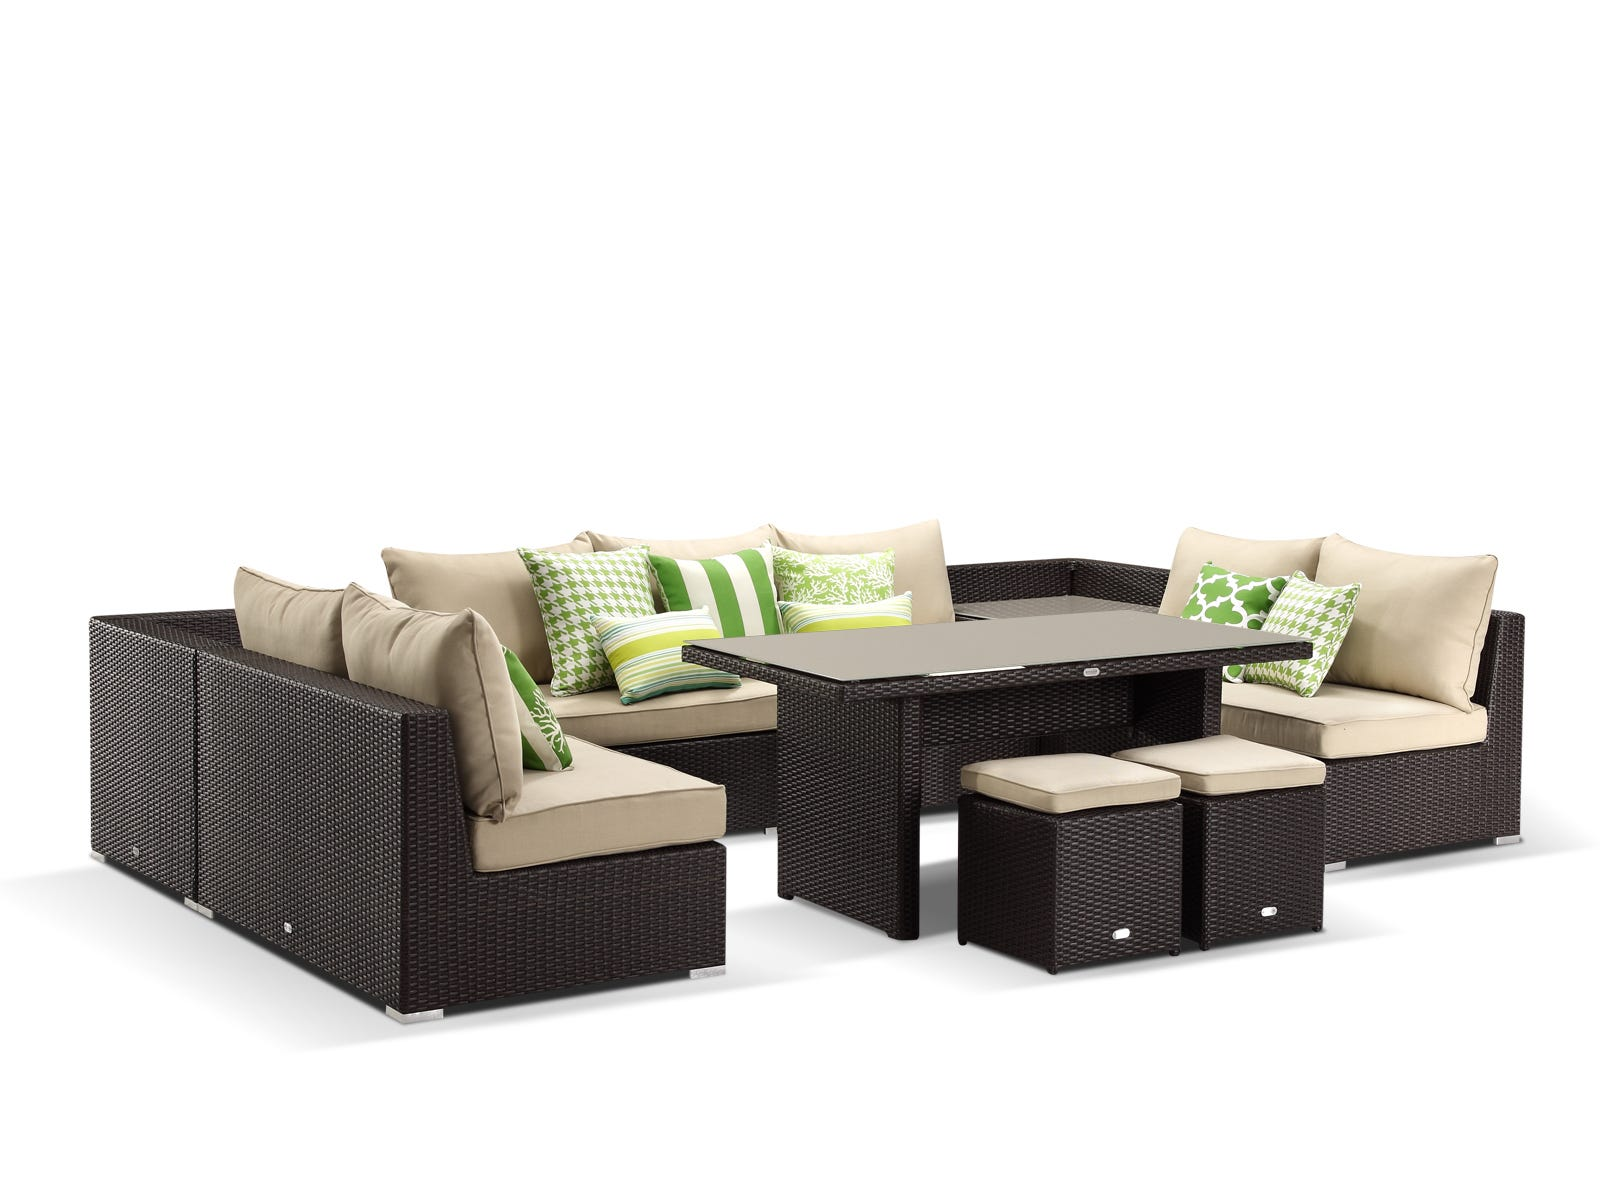 Outdoor furniture evolution dining out in comfort for Outdoor furniture online